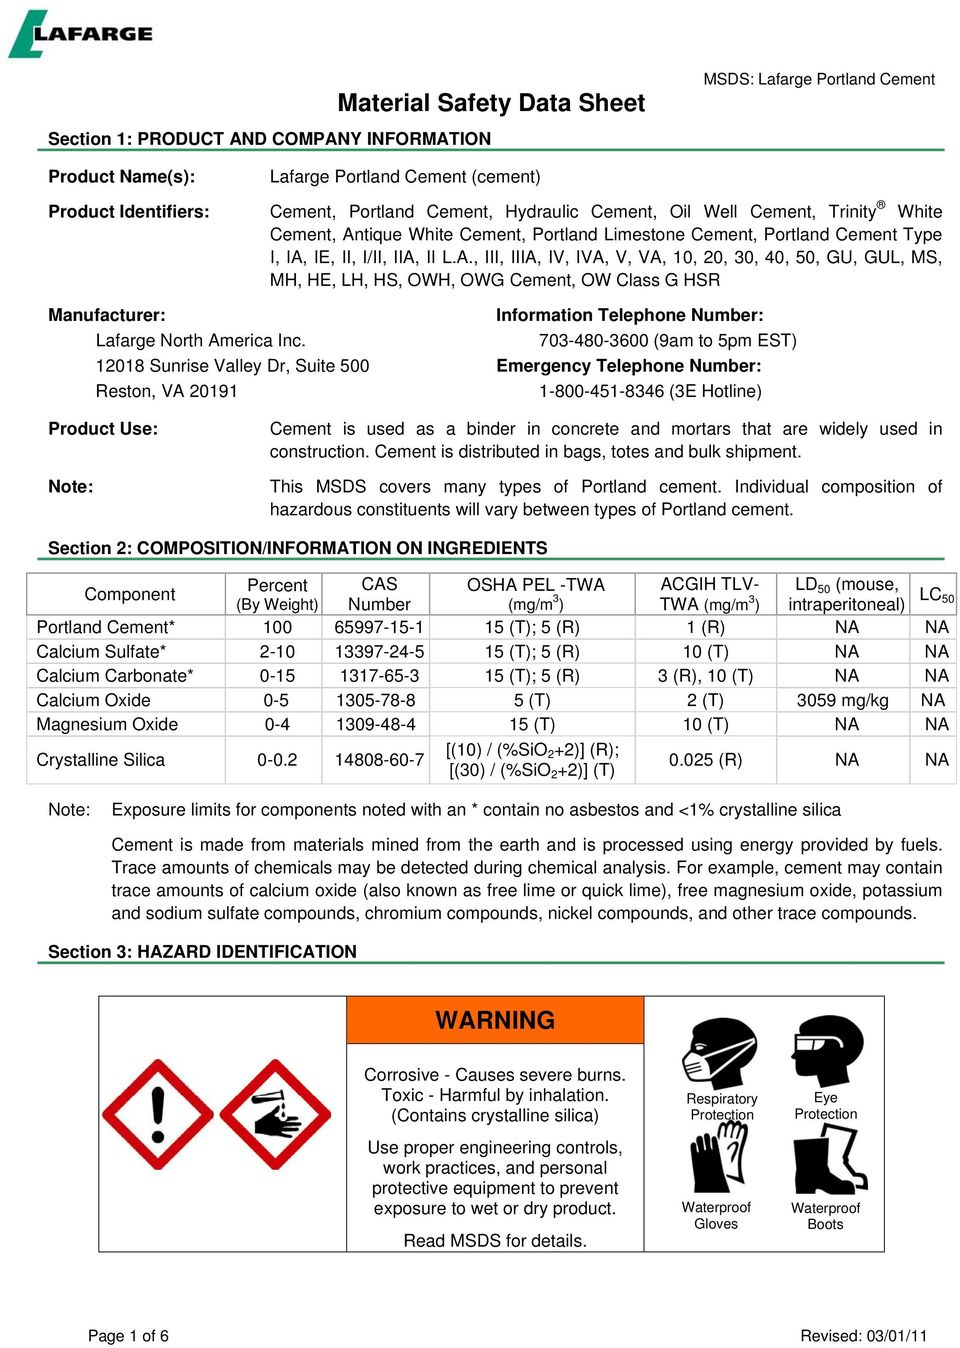 Material Safety Data Sheet - PDF